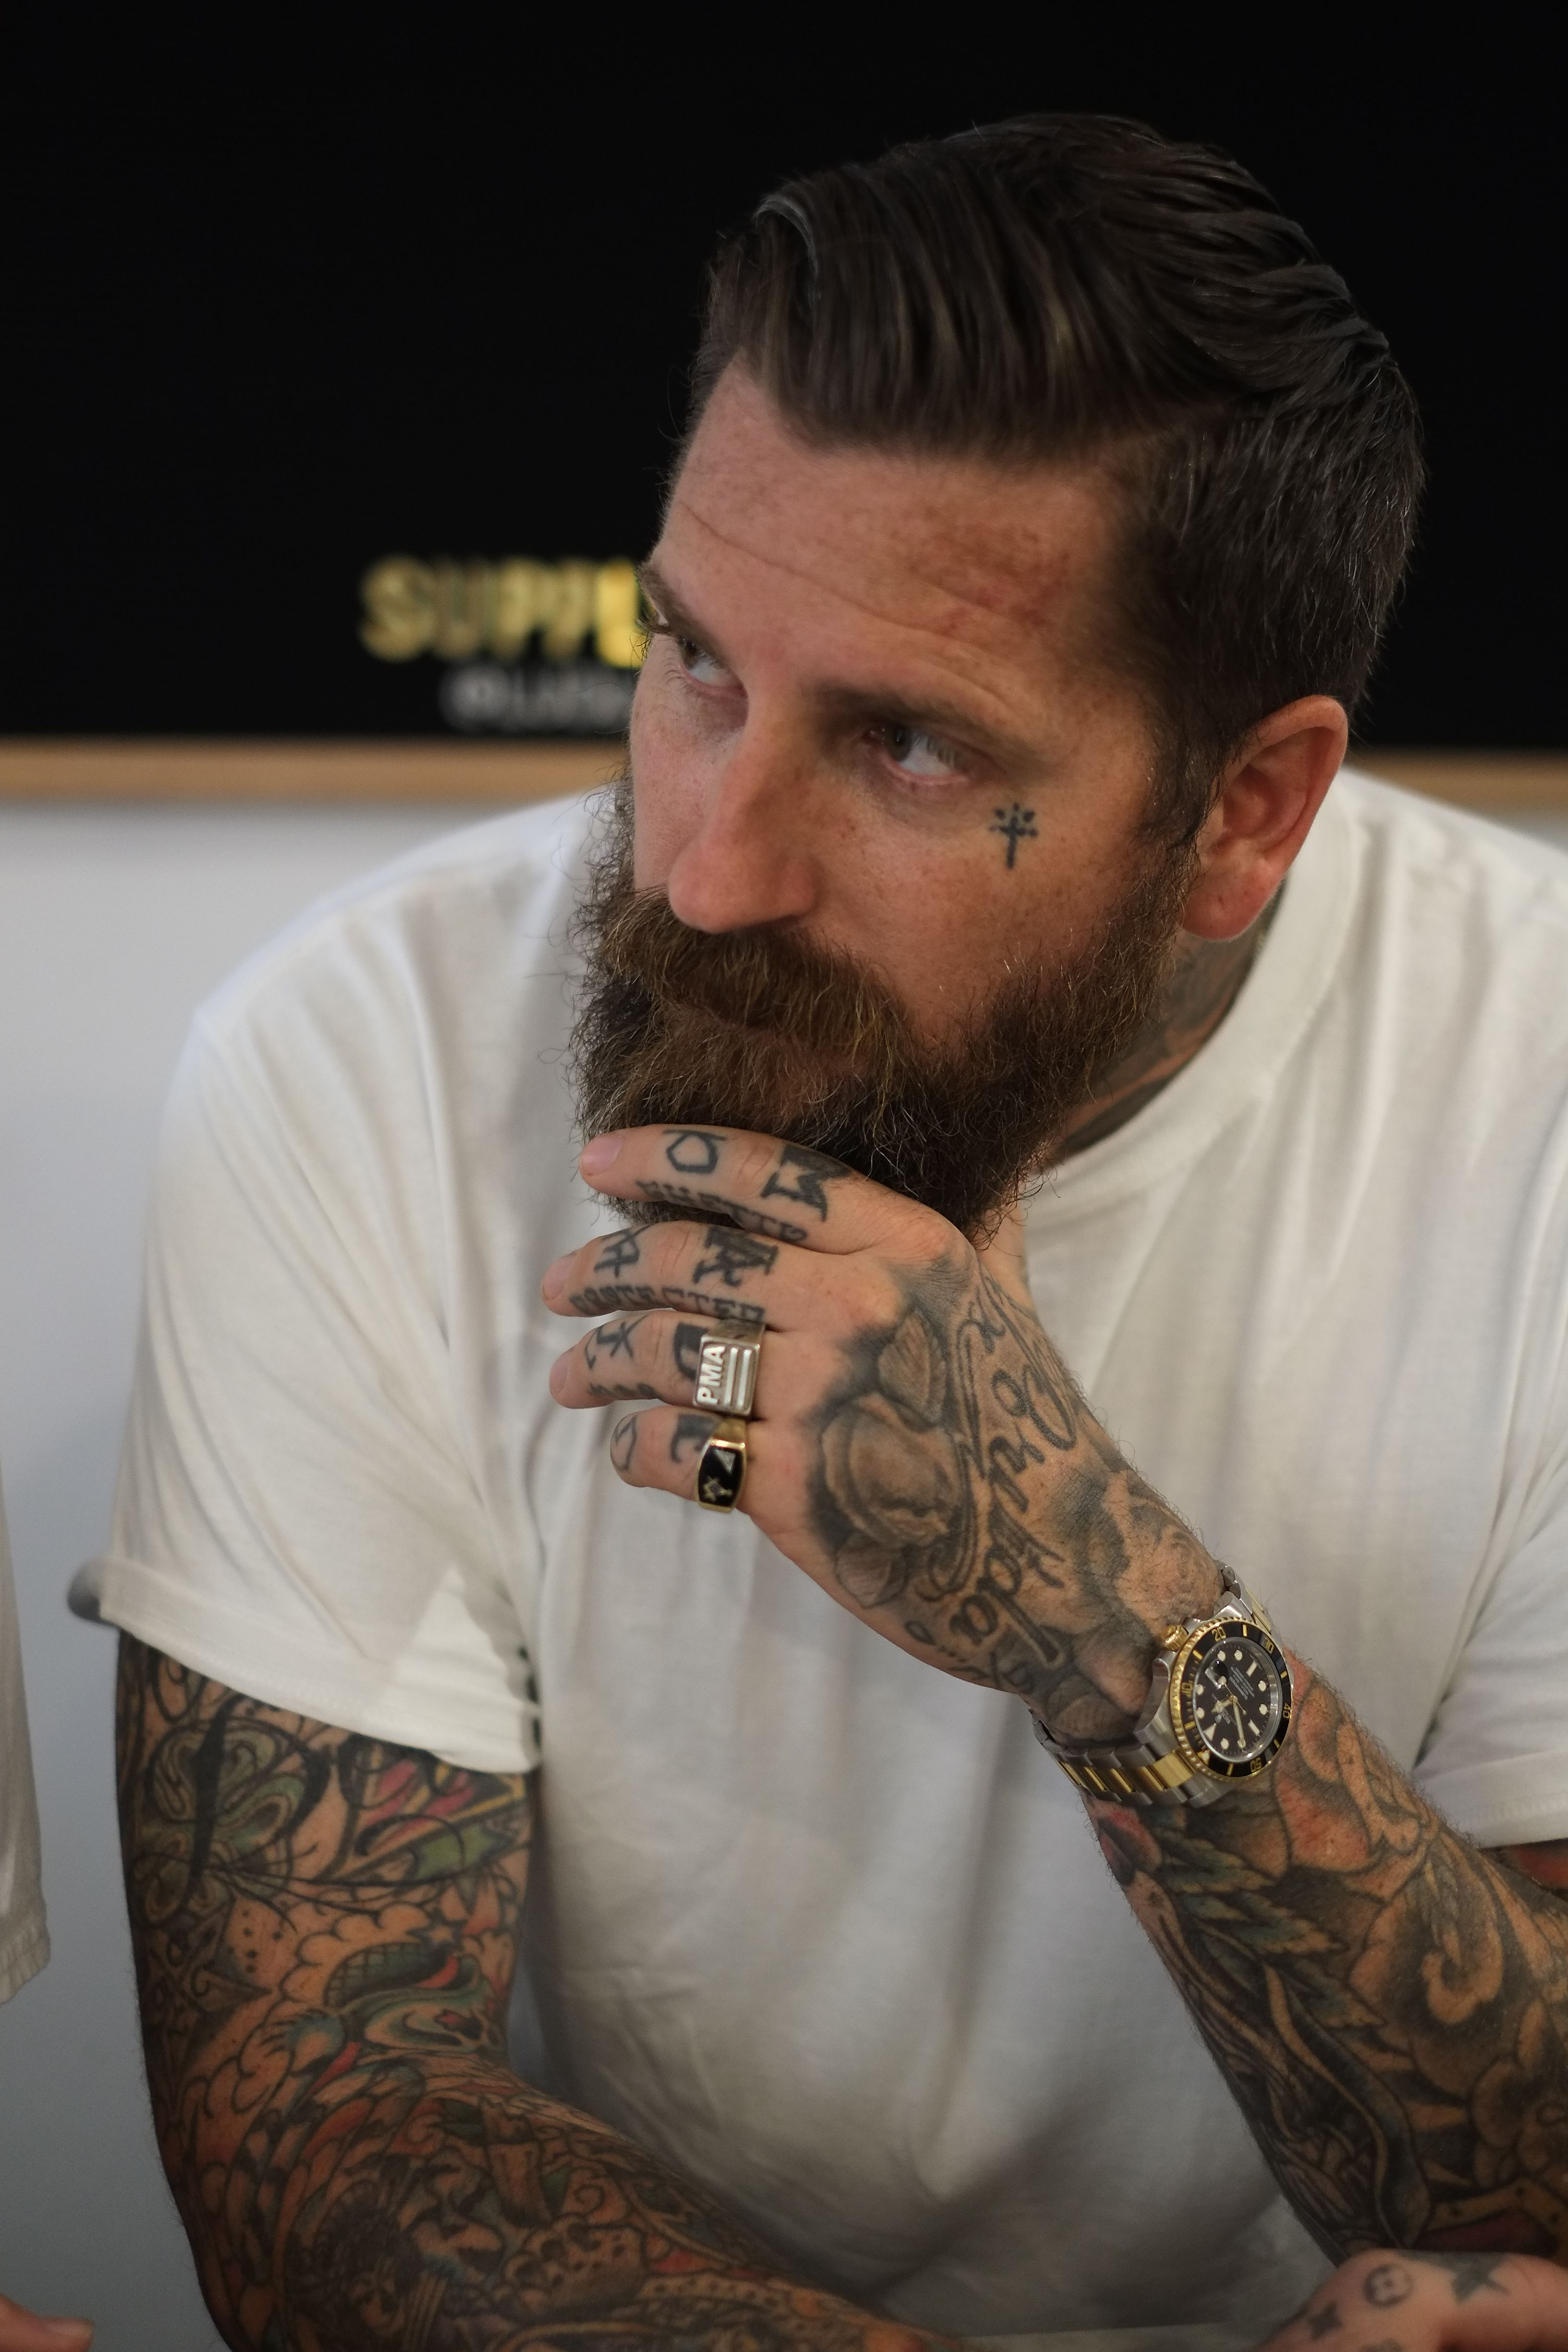 15f557ca7 Luke Wessman at a barber shop in lower east side New York called Ludlow  barber supply. Beard, tattoos, Rolex and rings. Gentleman